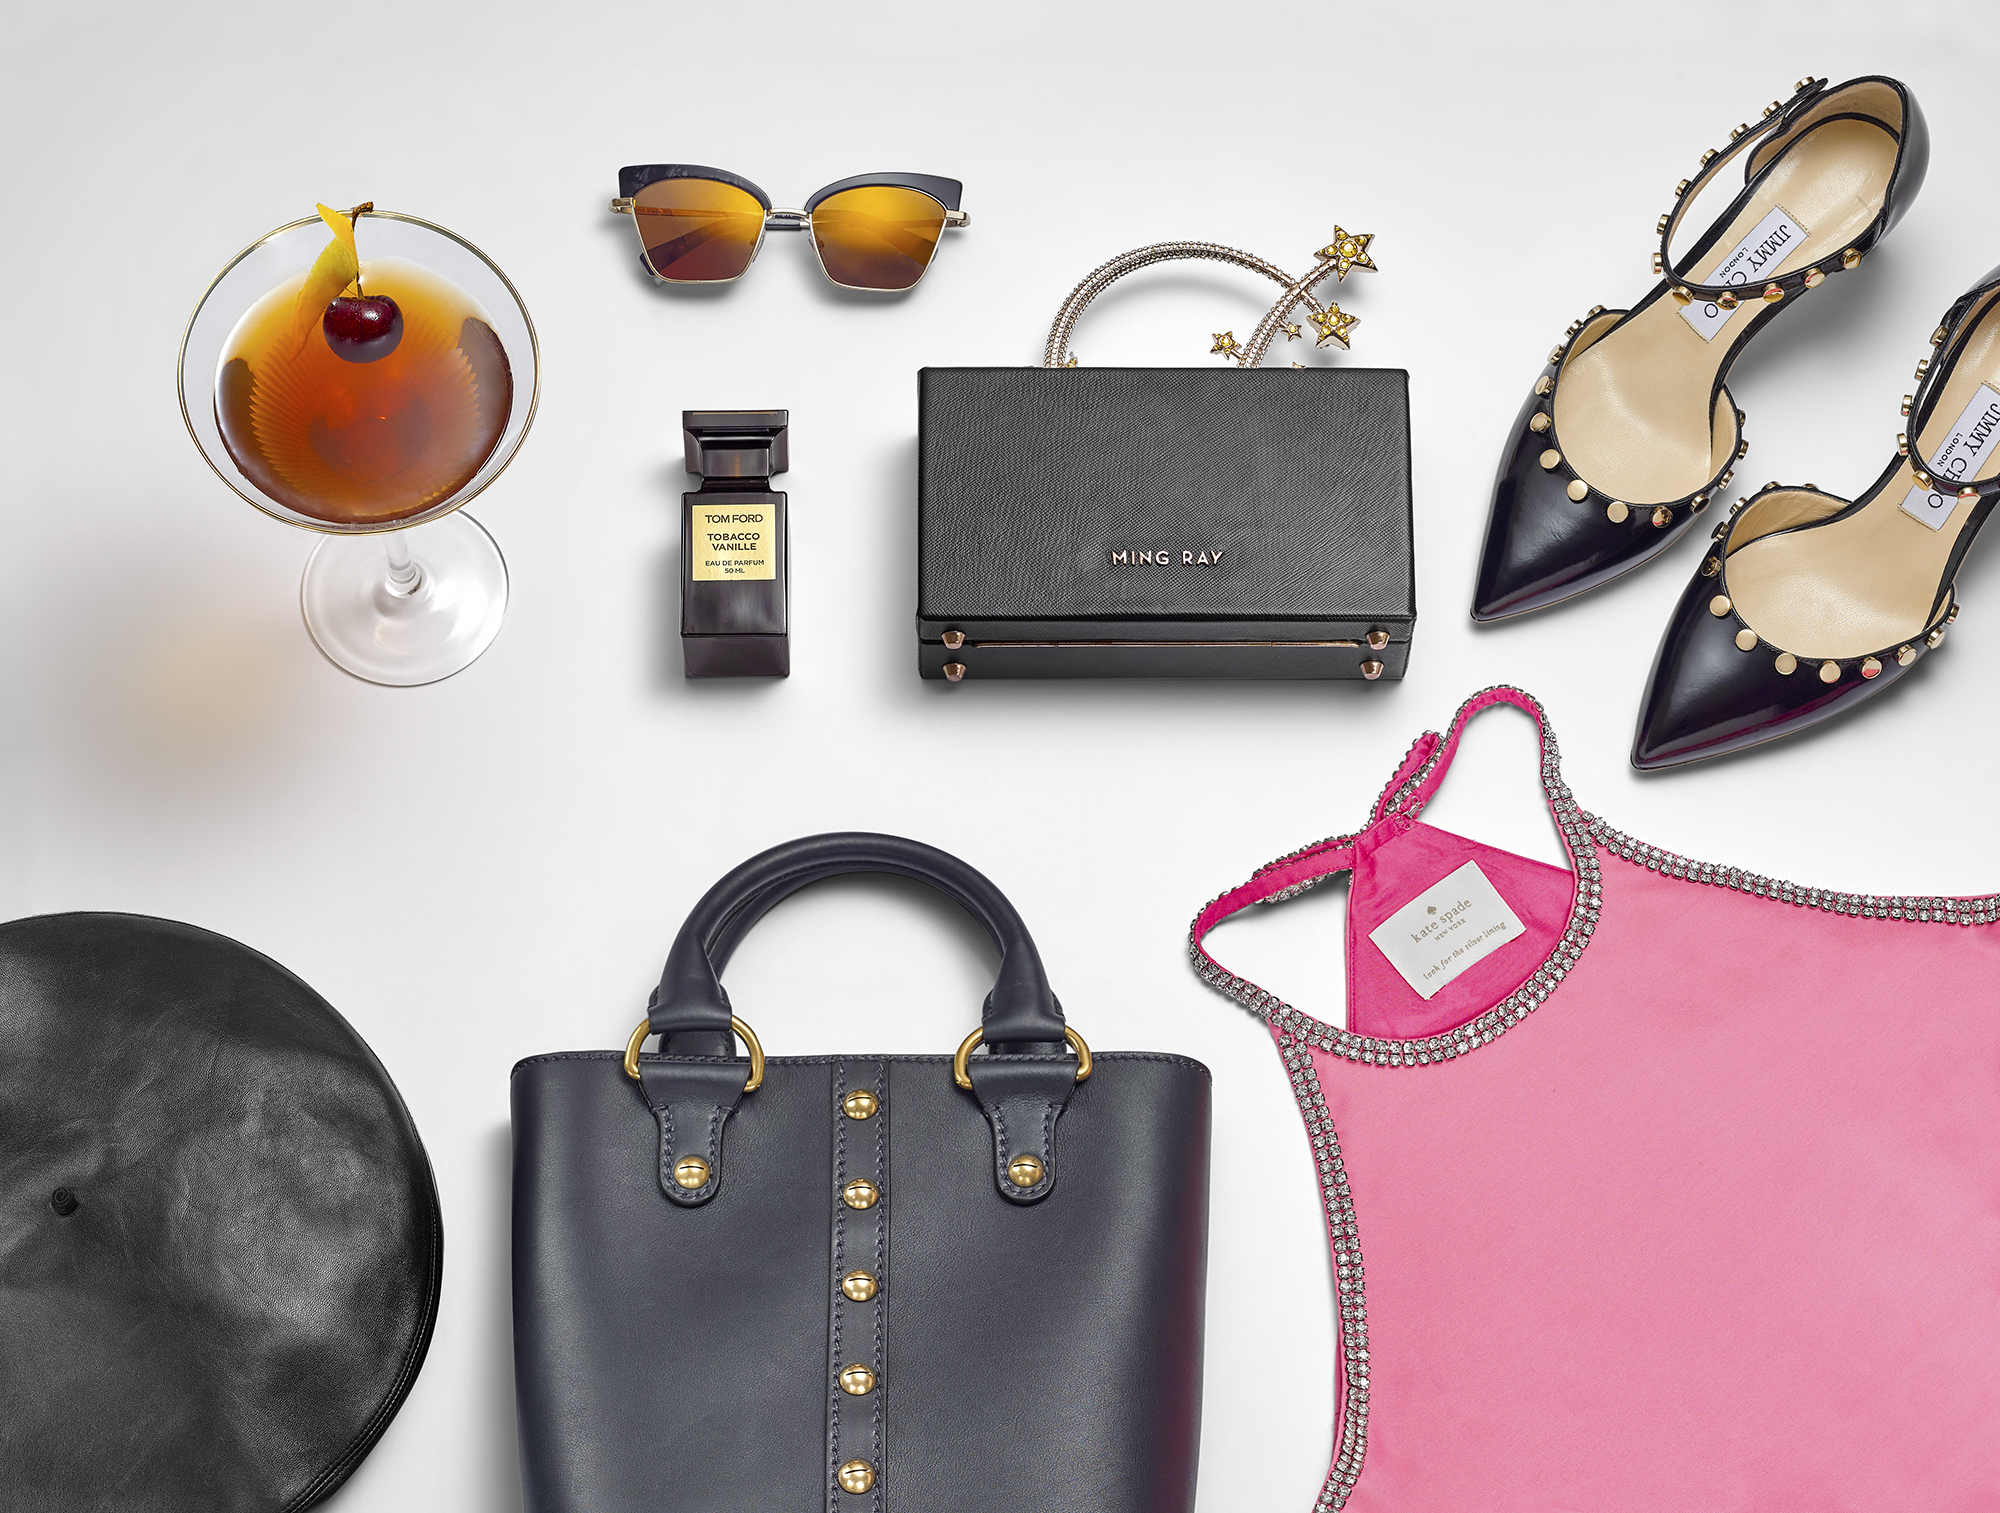 still life fashion accessories from New York. All the products, handbags jewellery dresses and shoes you would need on a city break. Product packshot photography completed by London still life photographer chris howlett